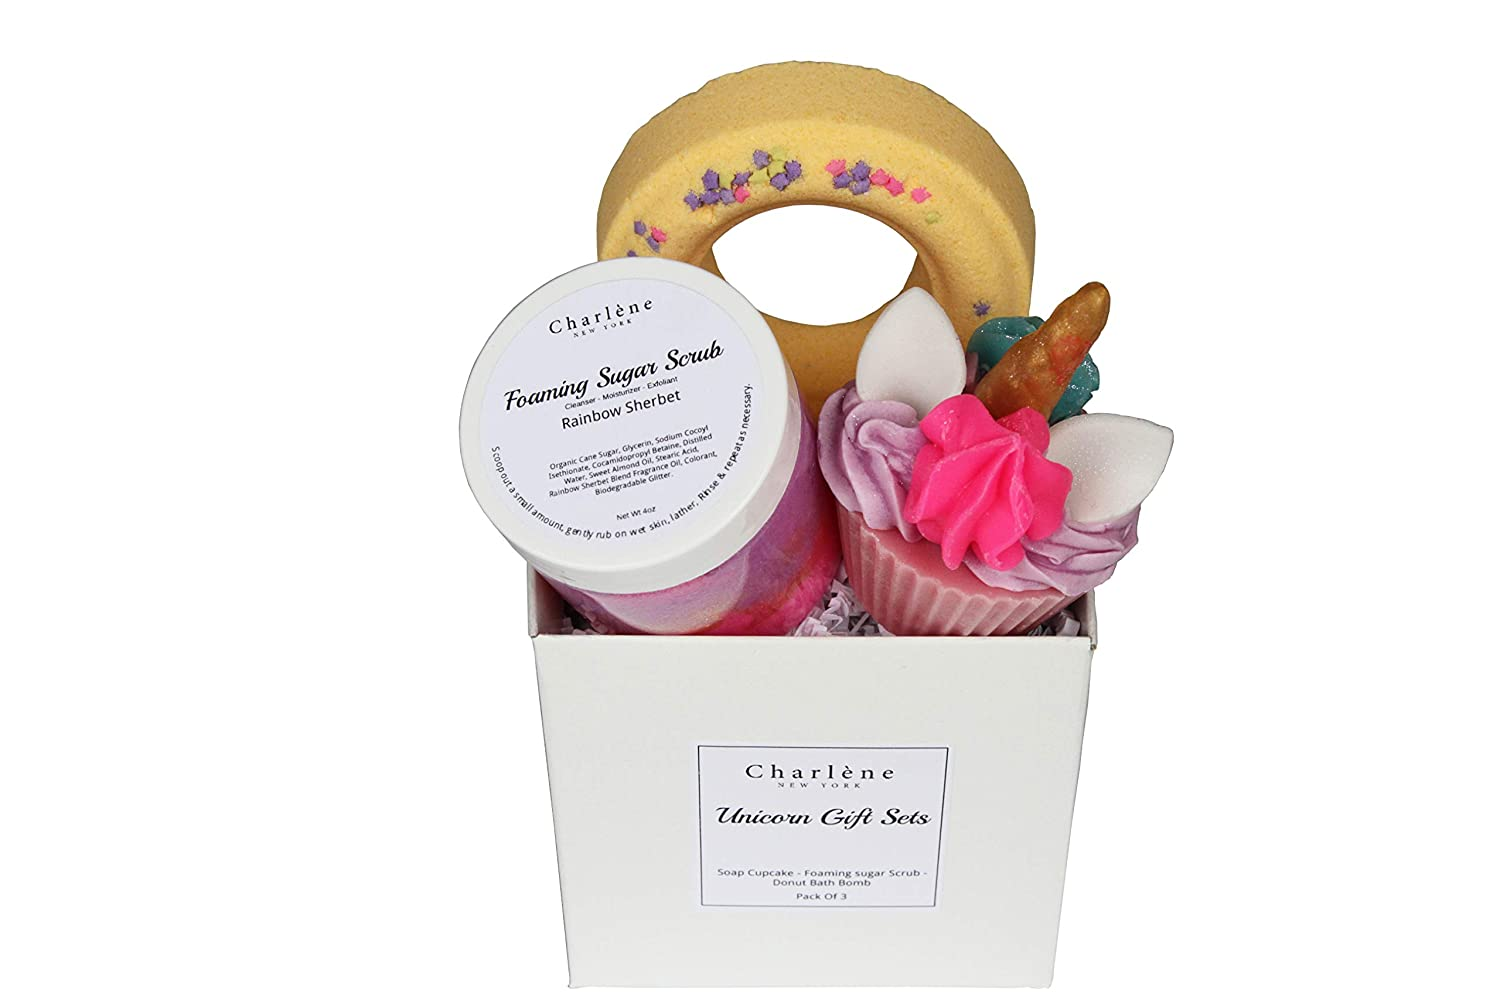 Amazon Charlene New York Unicorn Gift Set For Kids Teens Women Best Birthday Gifts Ideas Includes 3 Amazing Products Sugar Scrub Bath